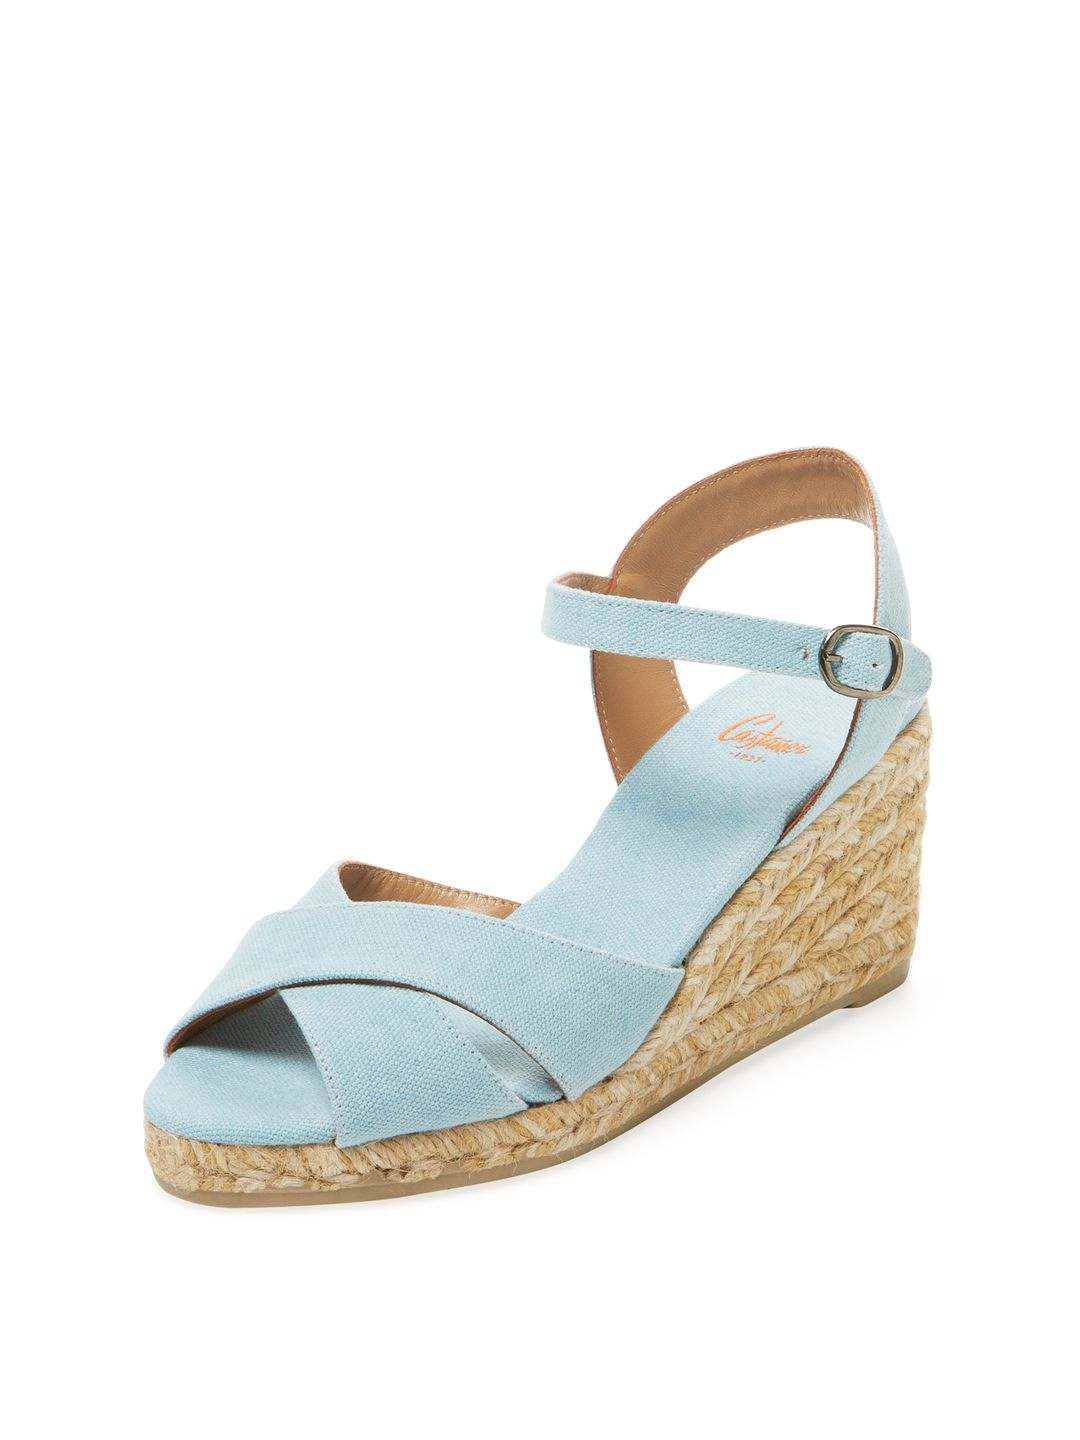 Castaner Blaudell Cross Strap Espadrille Wedge (Women's)